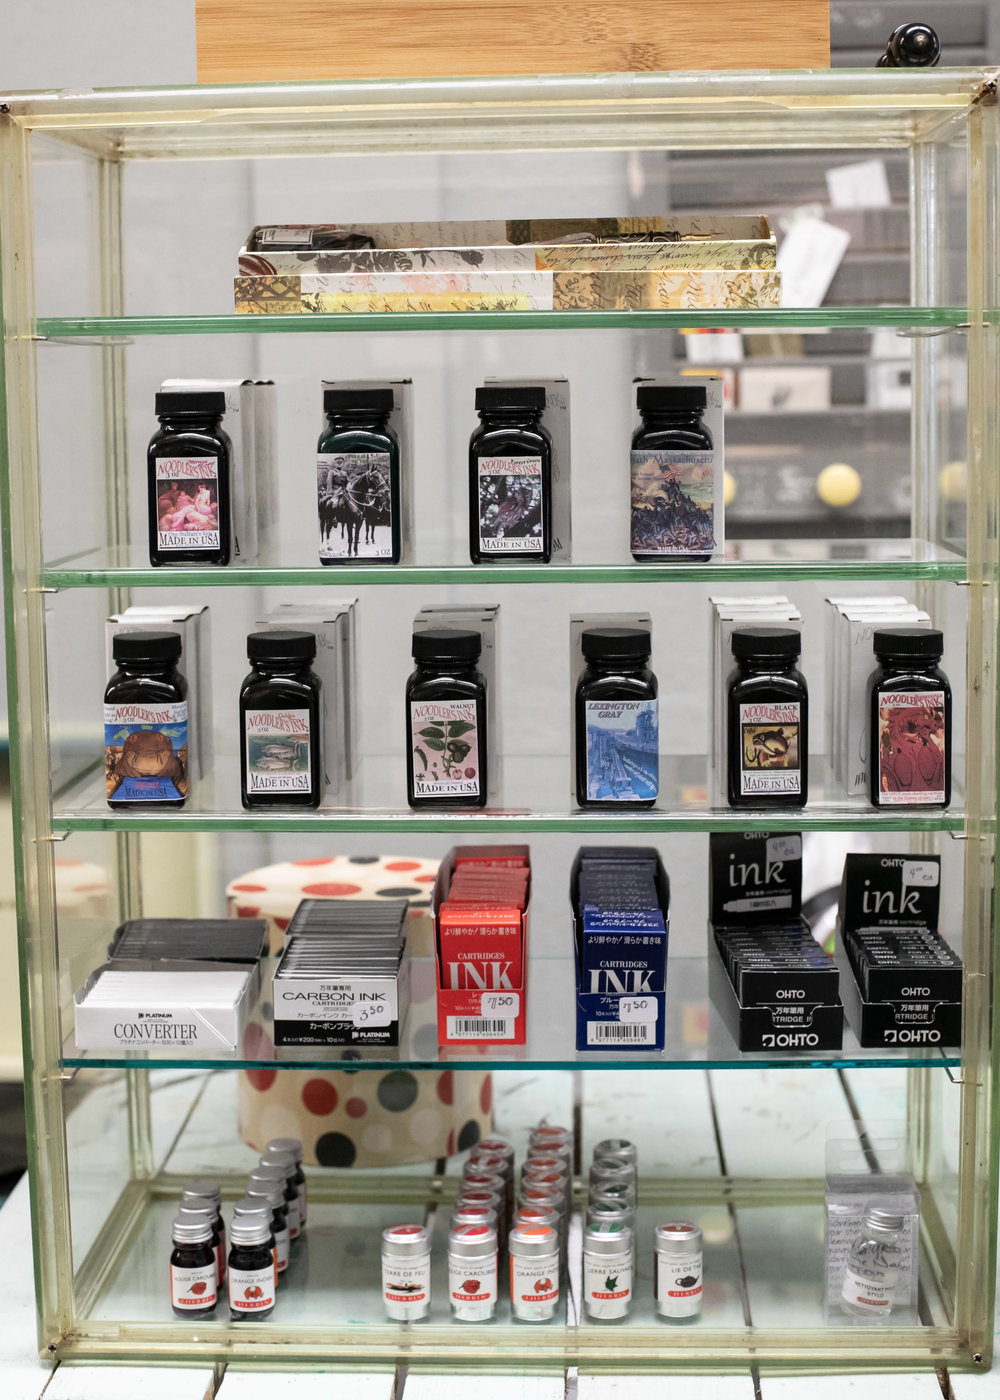 The ink - There is a cabinet full of fountain pen ink, mainly Noodler's and J. Herbin.